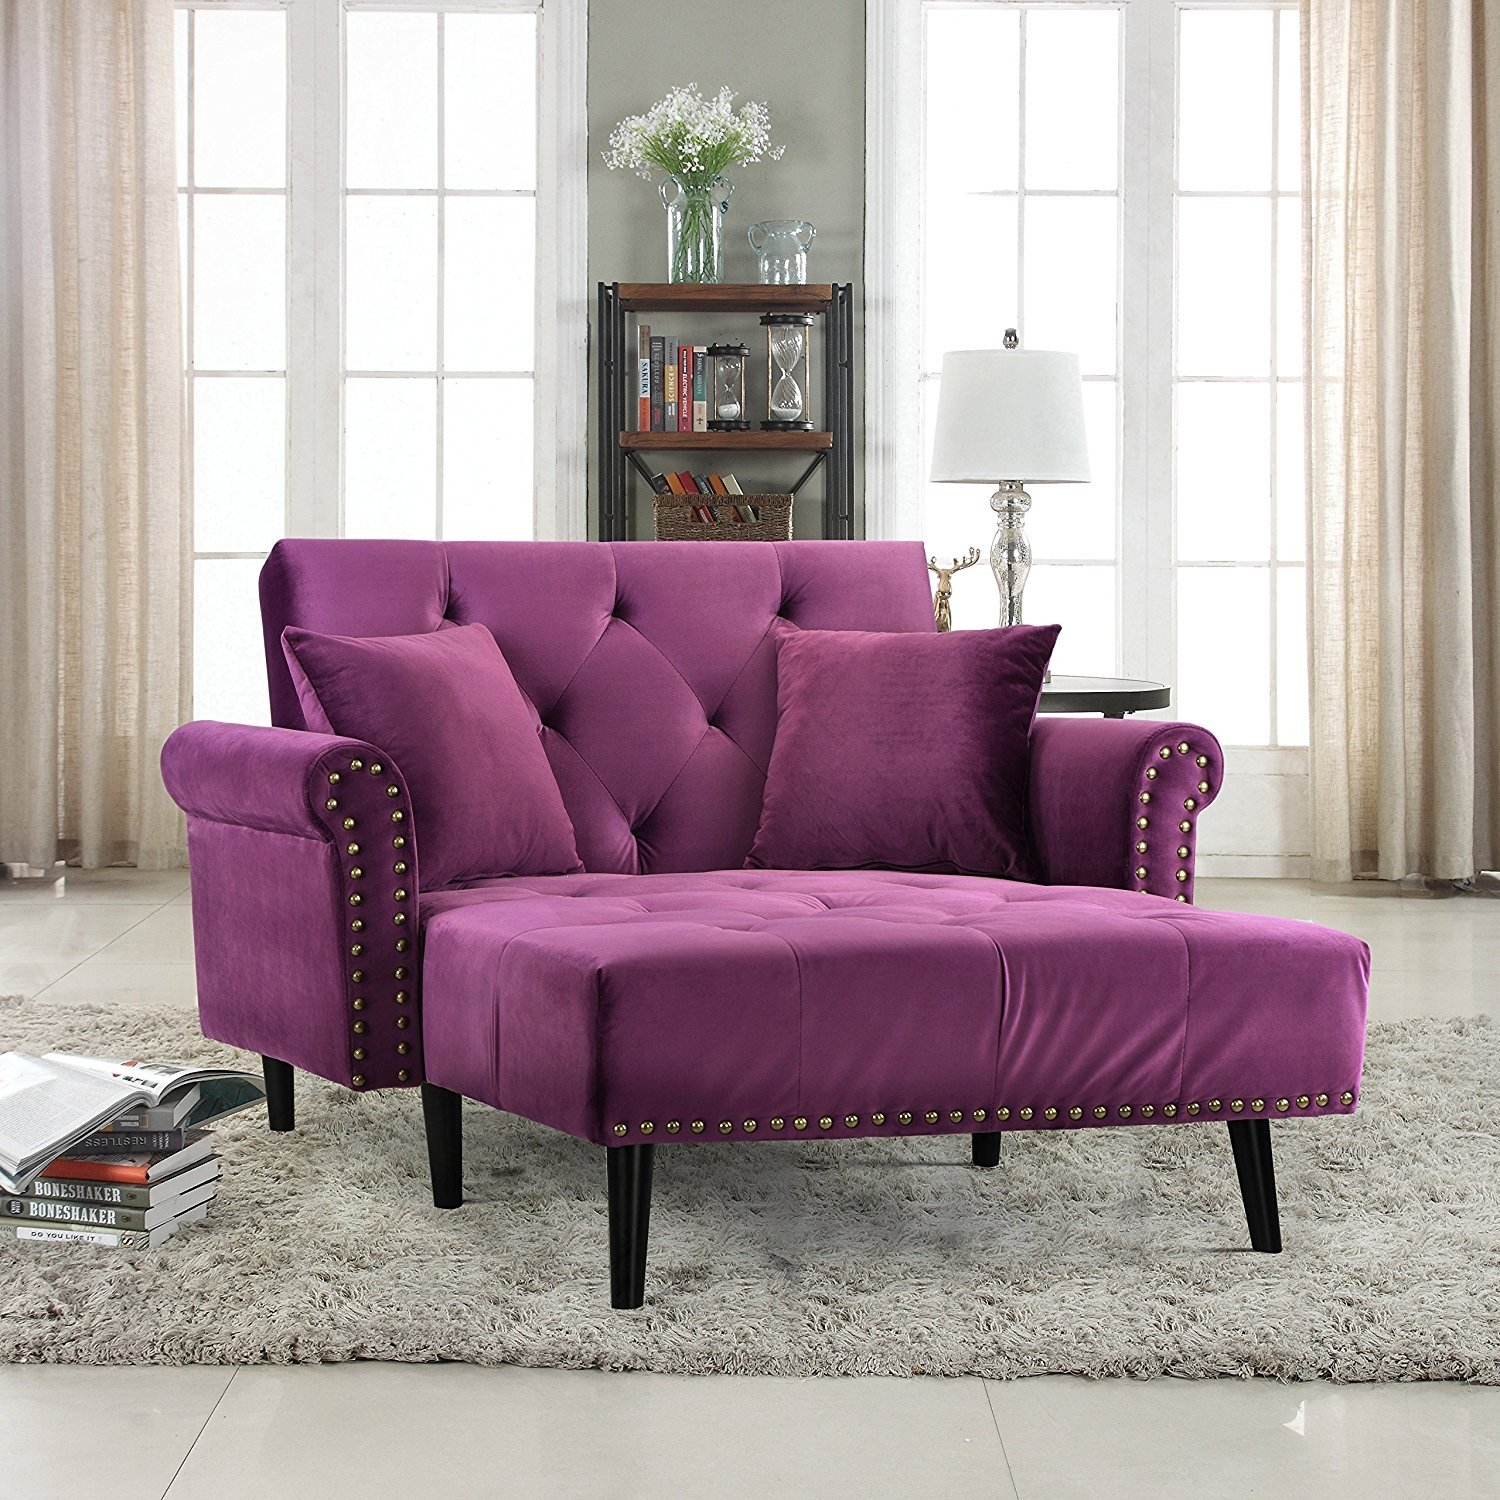 Chaise Style Details About Victorian Style Chaise Lounge Tufted Velvet With Nailheads Recliner Purple